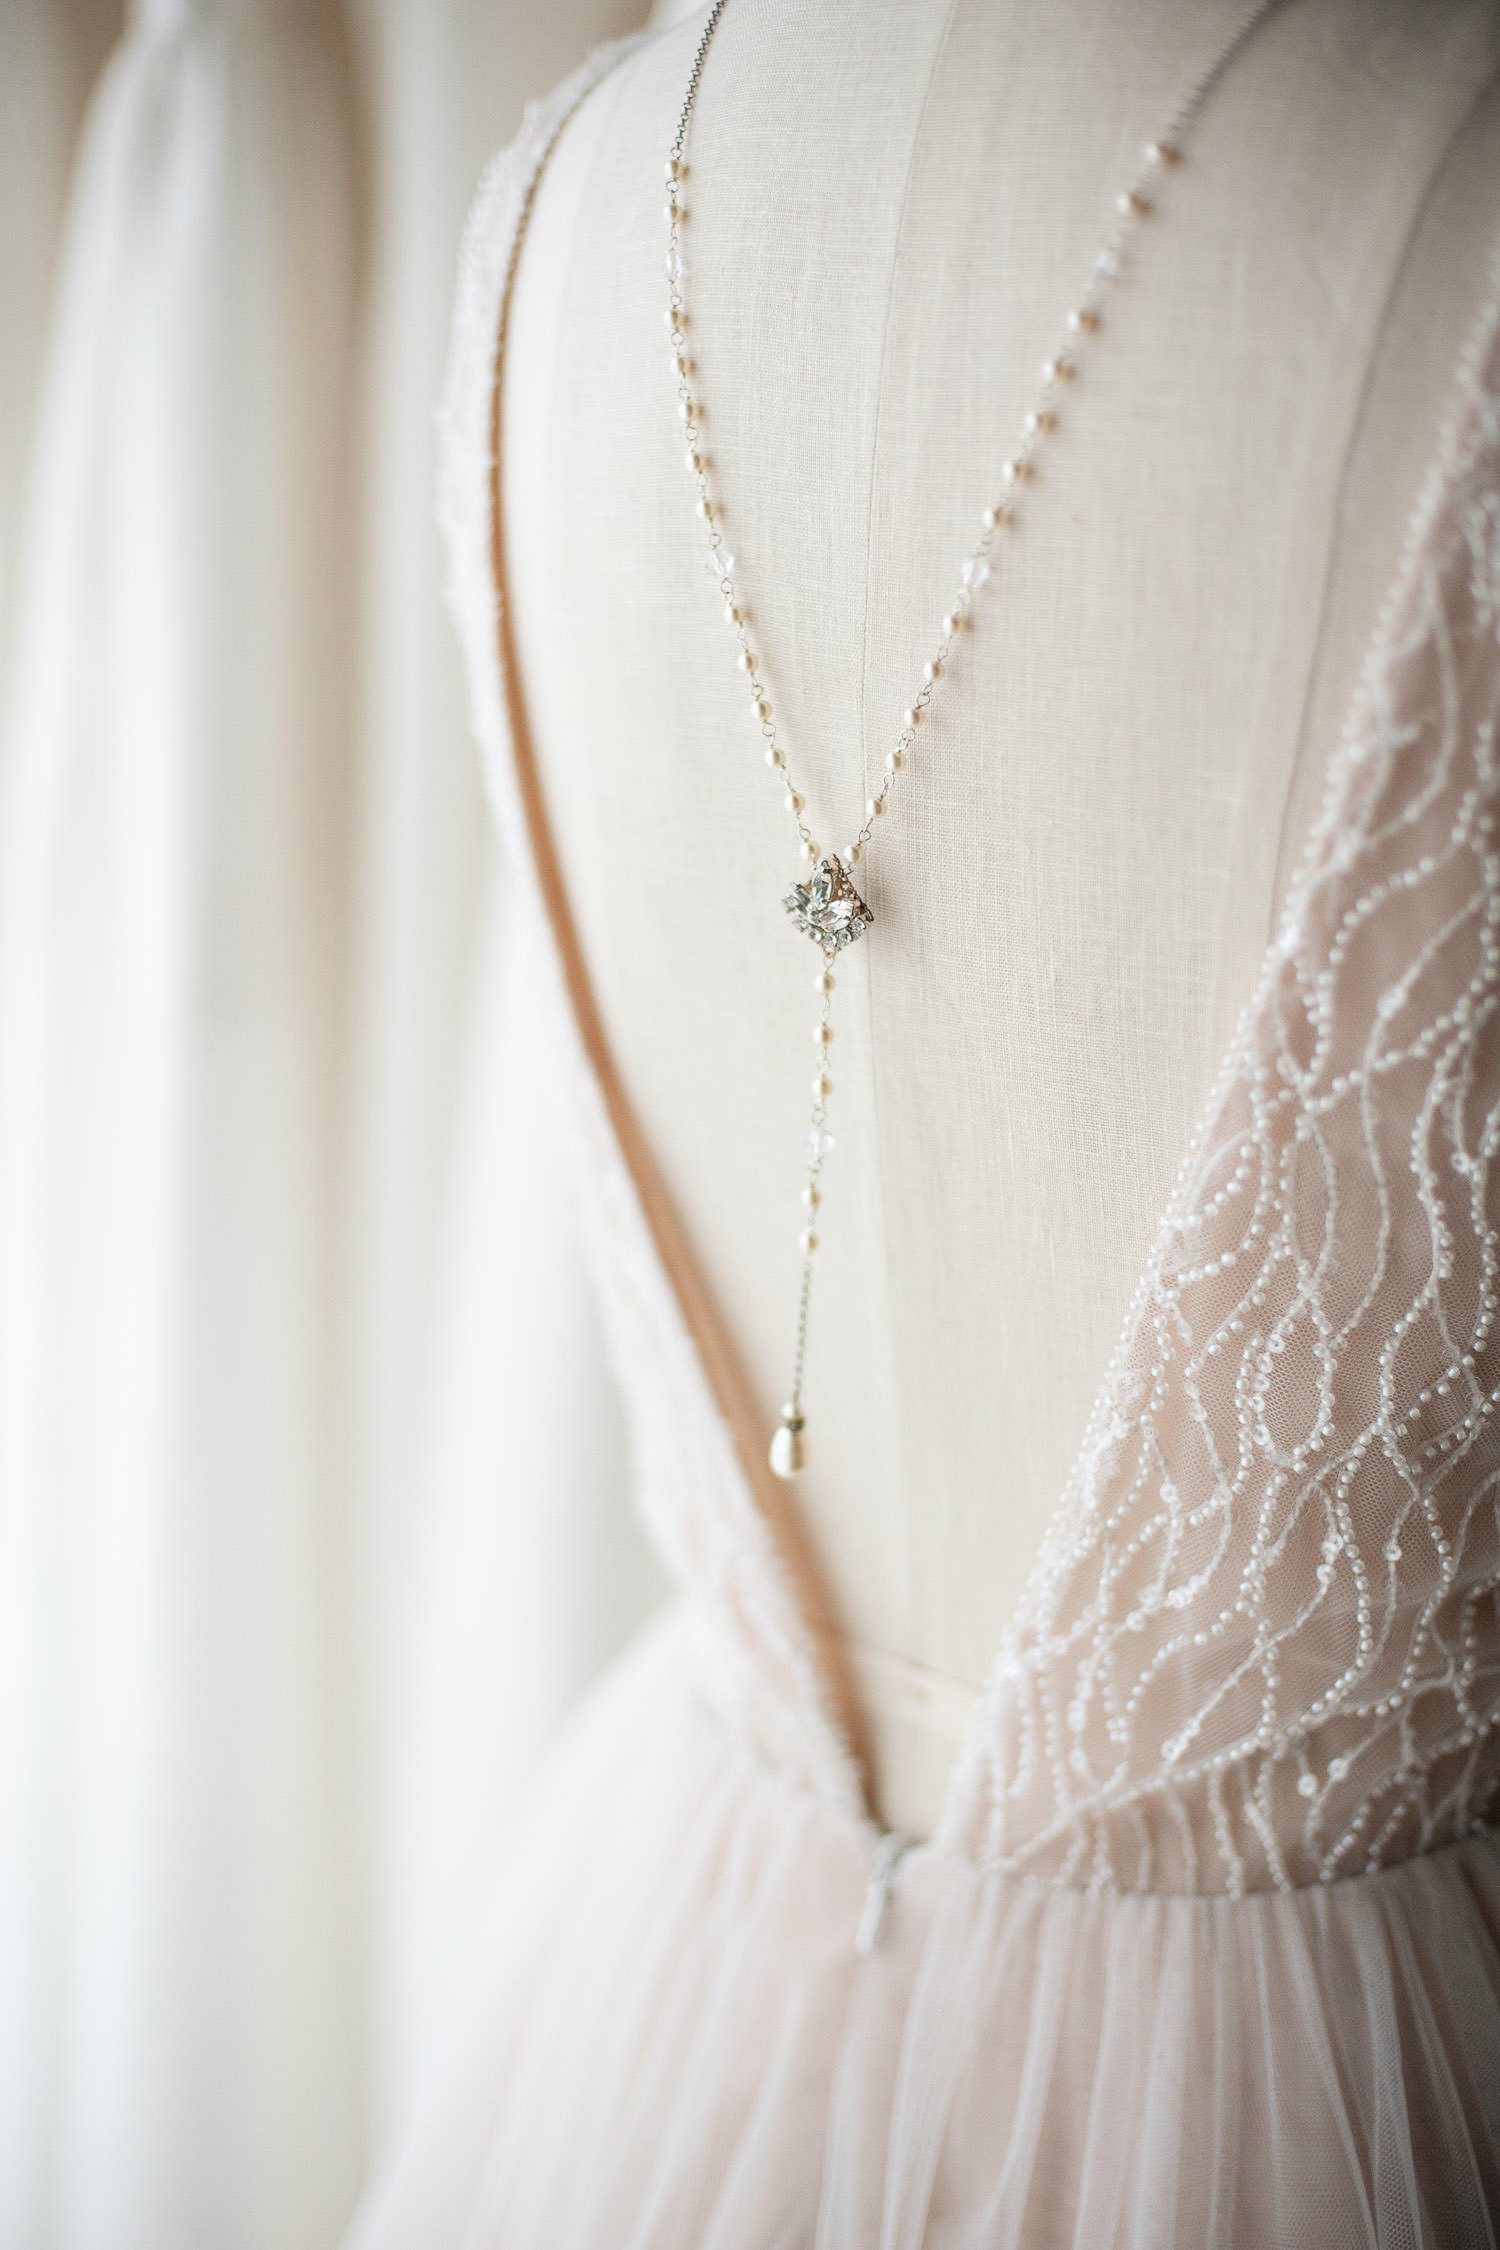 pearl back necklace Calgary jewelry designer Joanna Bisley captured by Tara Whittaker Photography